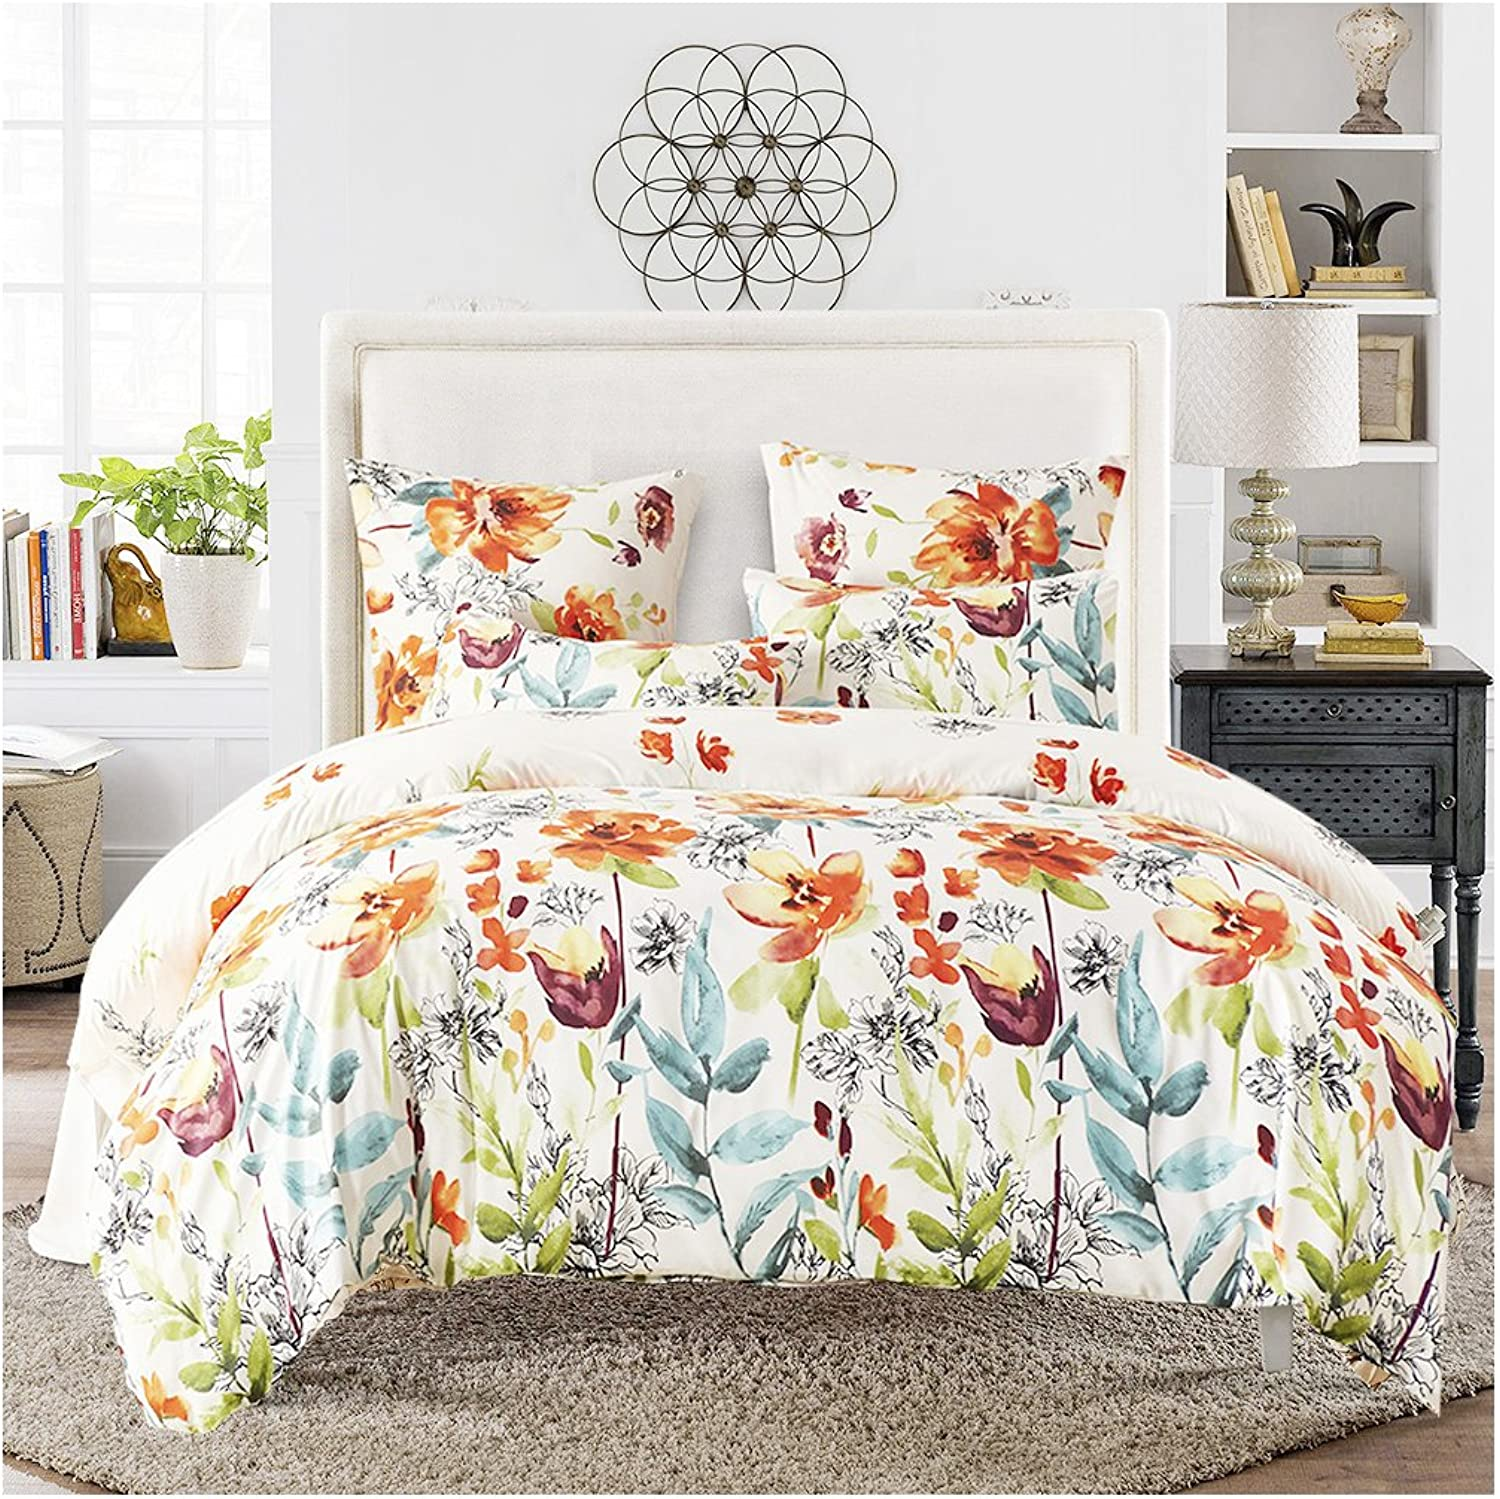 VERYBON Bedding Set Duvet Cover Set 3 Pieces, 1500 Thread Count Egyptian Quality,Super Soft and wrinkle free